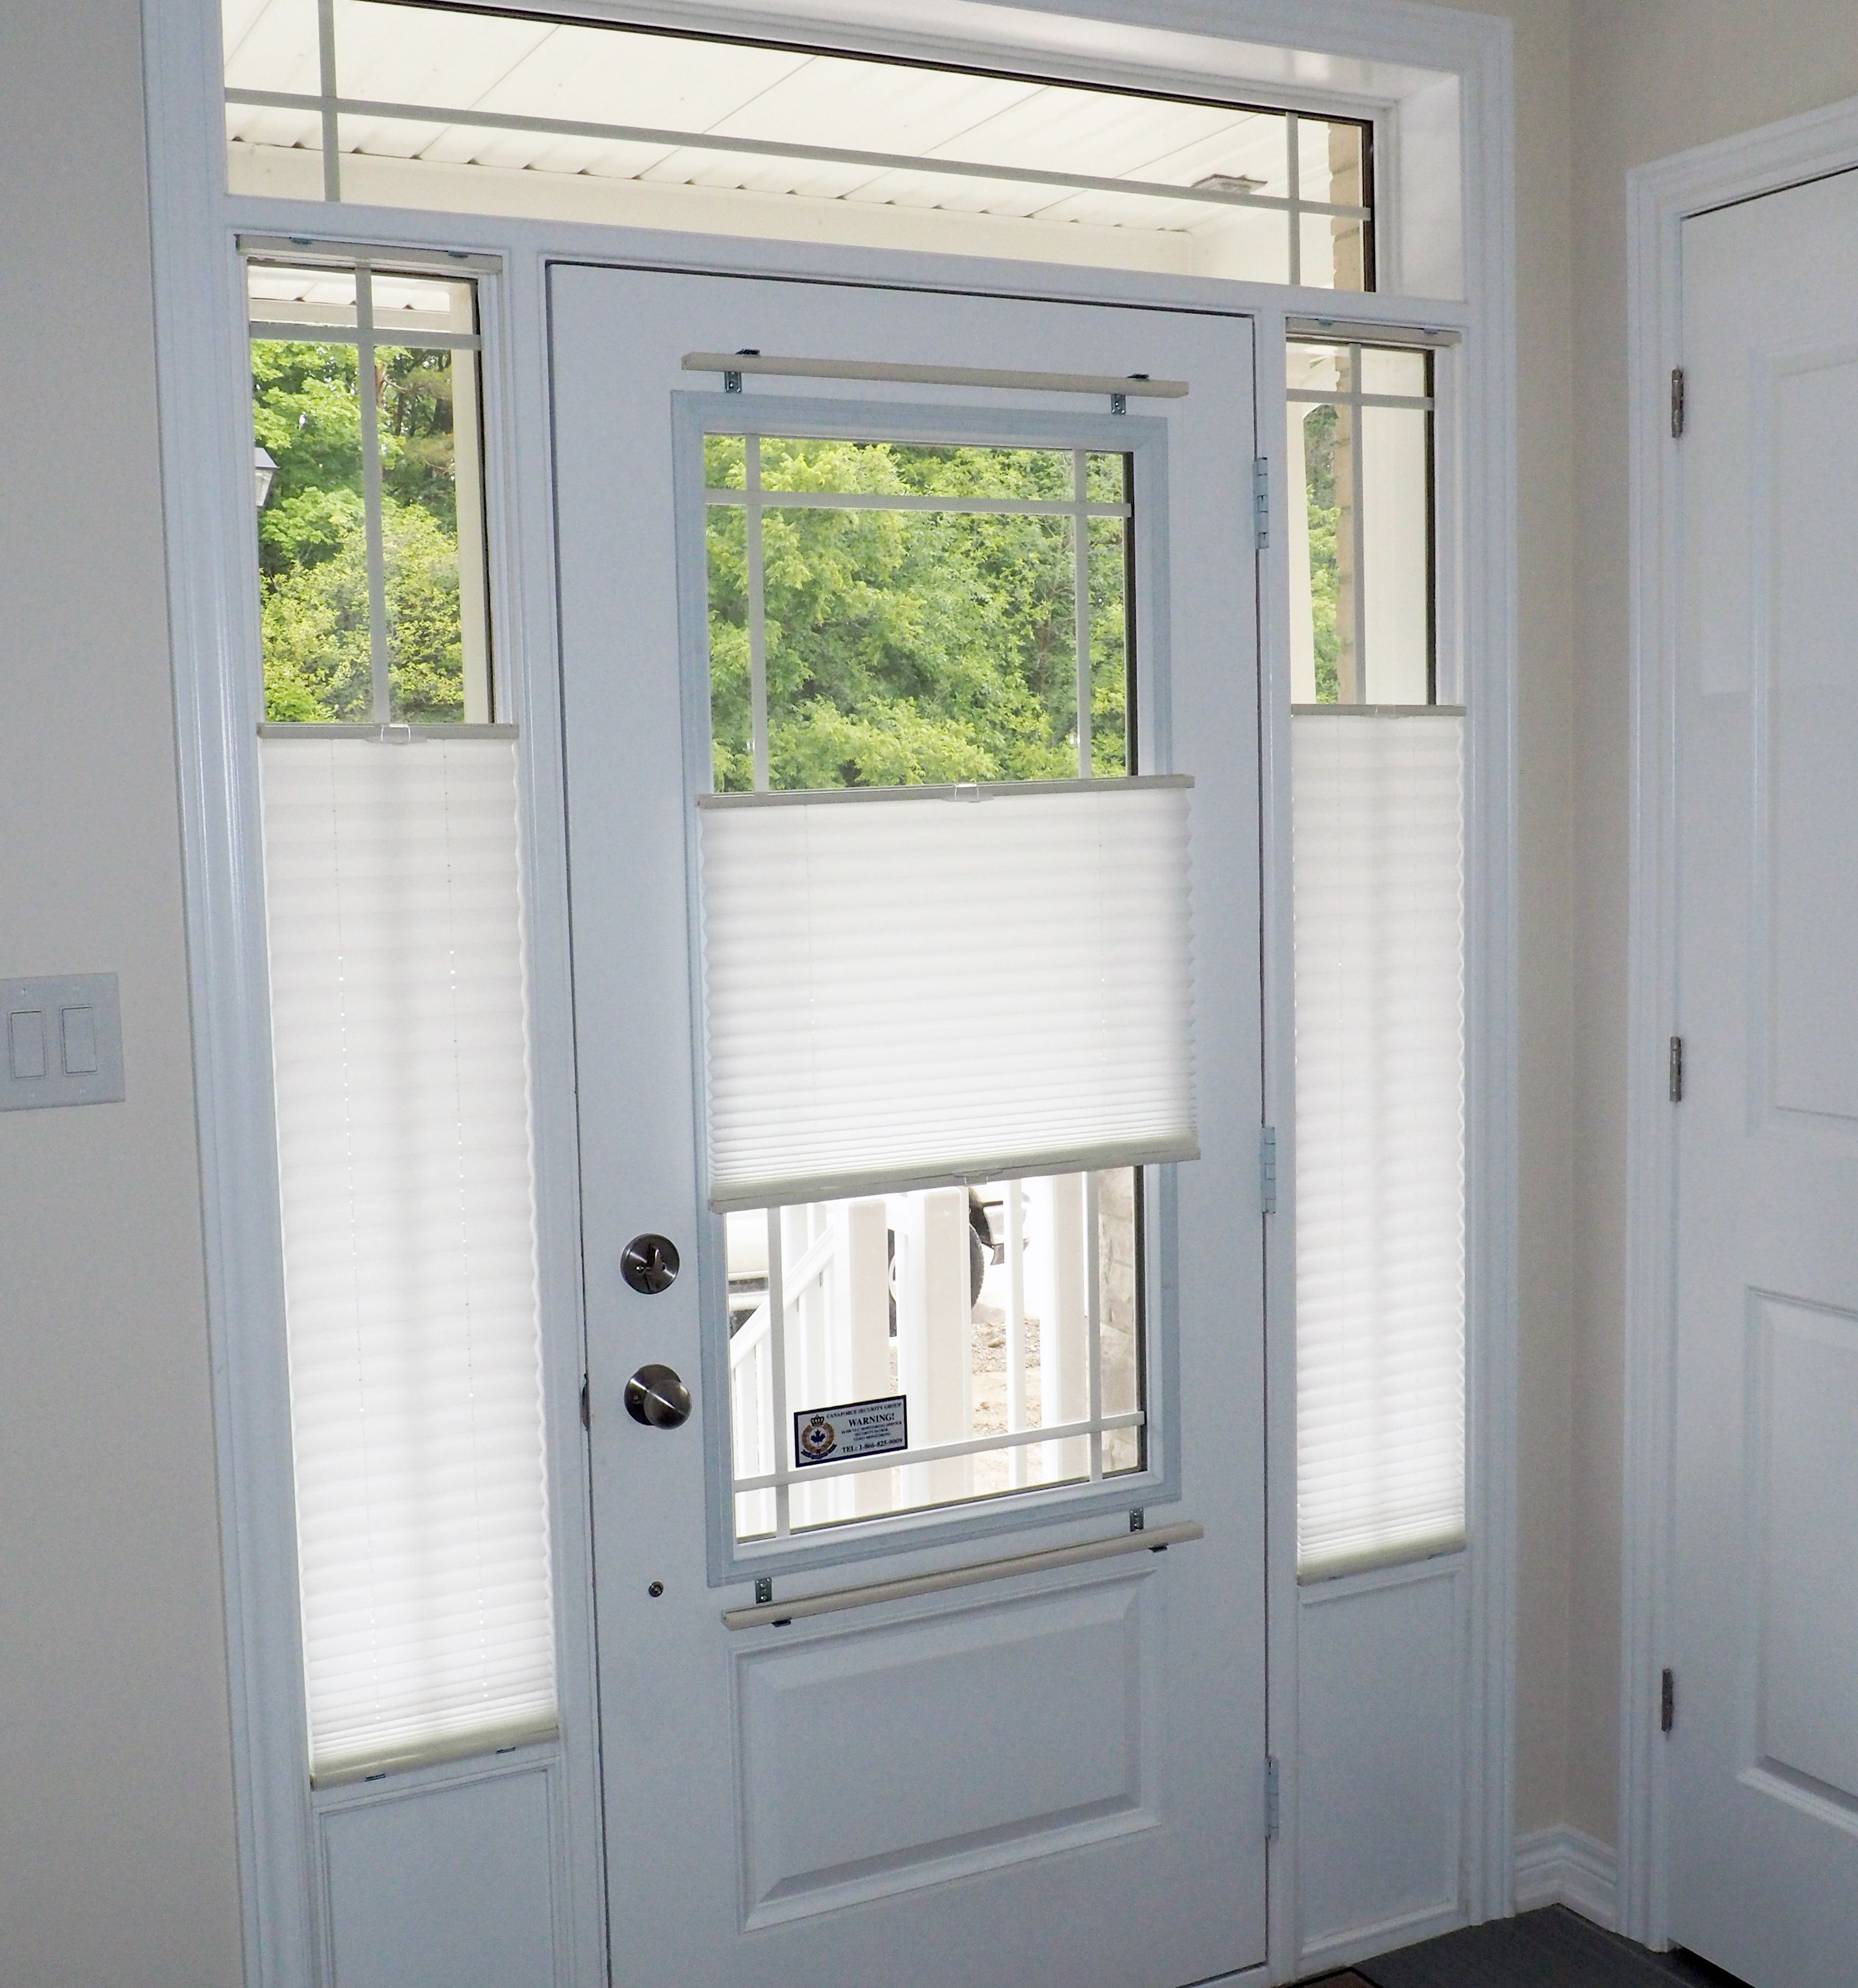 Pleated Shades Are An Economical Yet Highly Functional Window